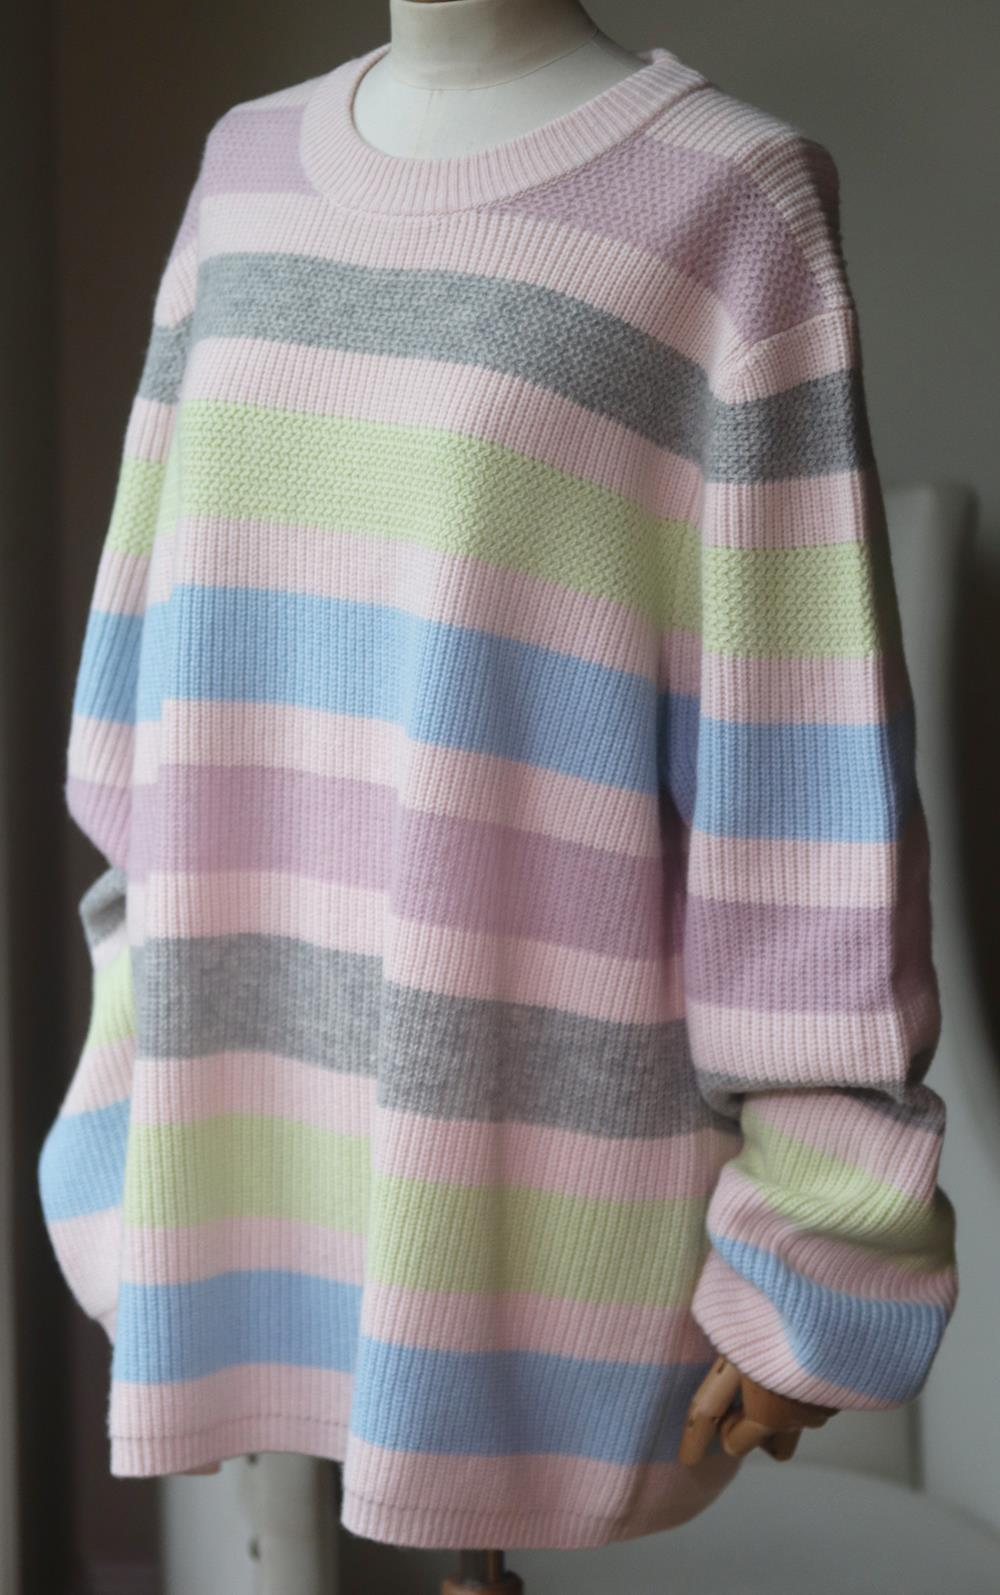 OPENING CEREMONY STRIPED RIBBED WOOL AND CASHMERE SWEATER LARGE